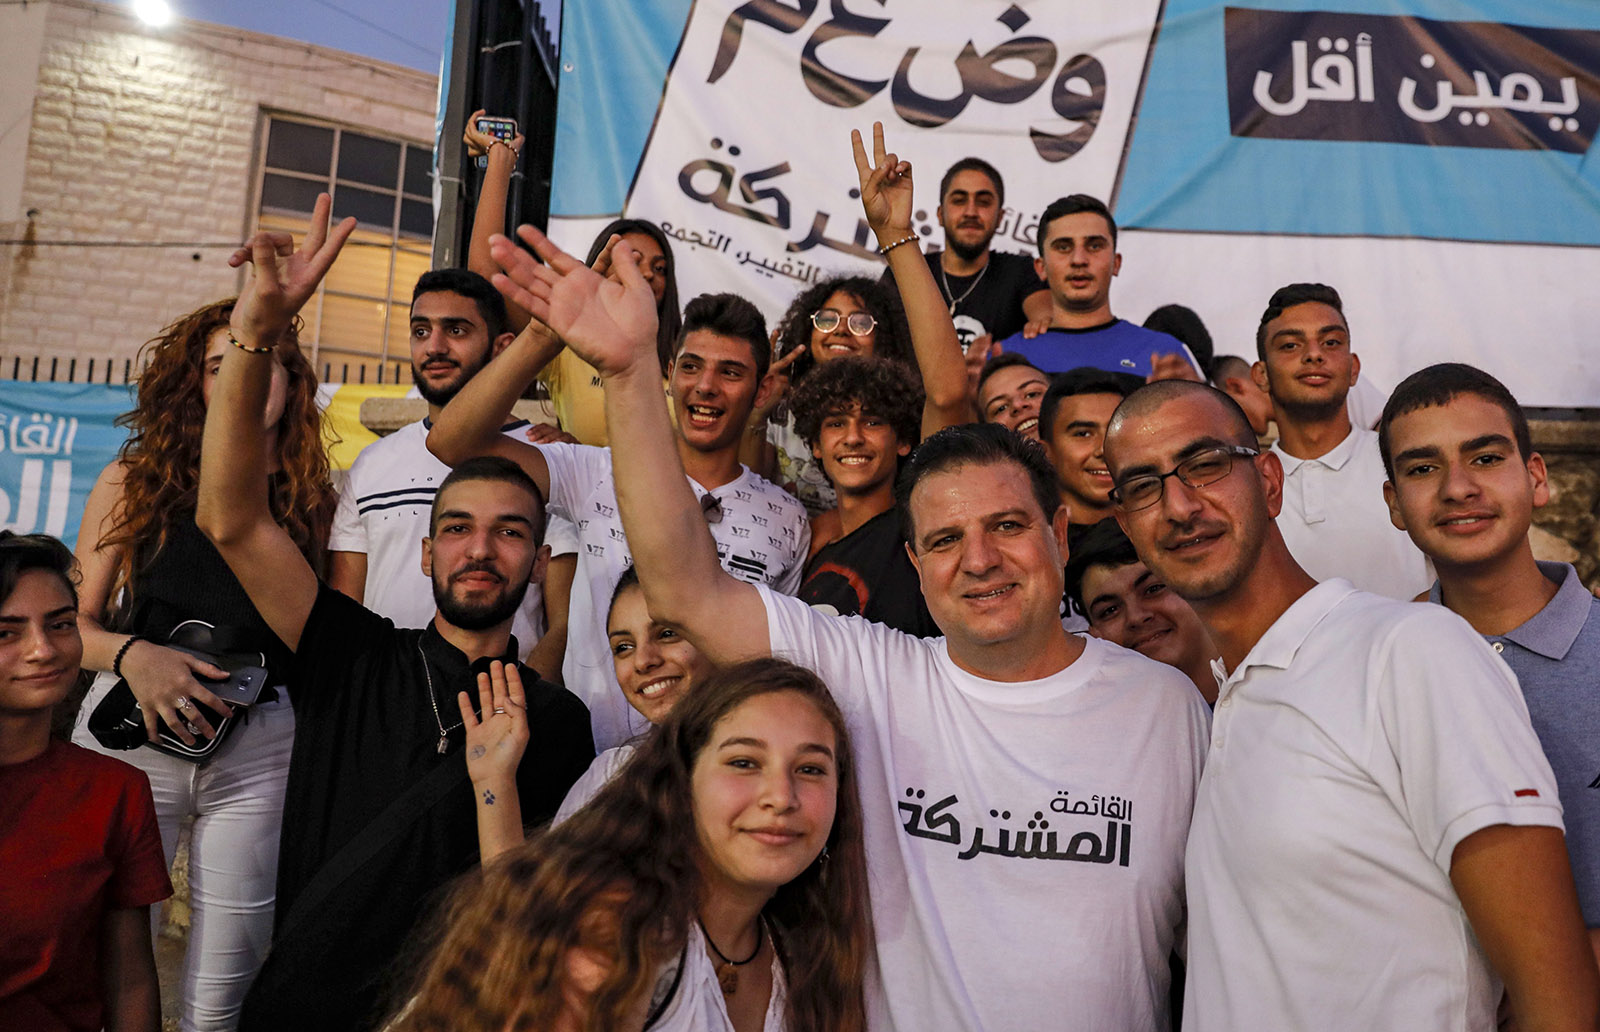 The Israeli-Arab politician Ayman Odeh (front, third from right) at a campaign rally for the Joint List alliance of Arab parties ahead of Israel's September election, Kafr Yasif, Israel, August 23, 2019